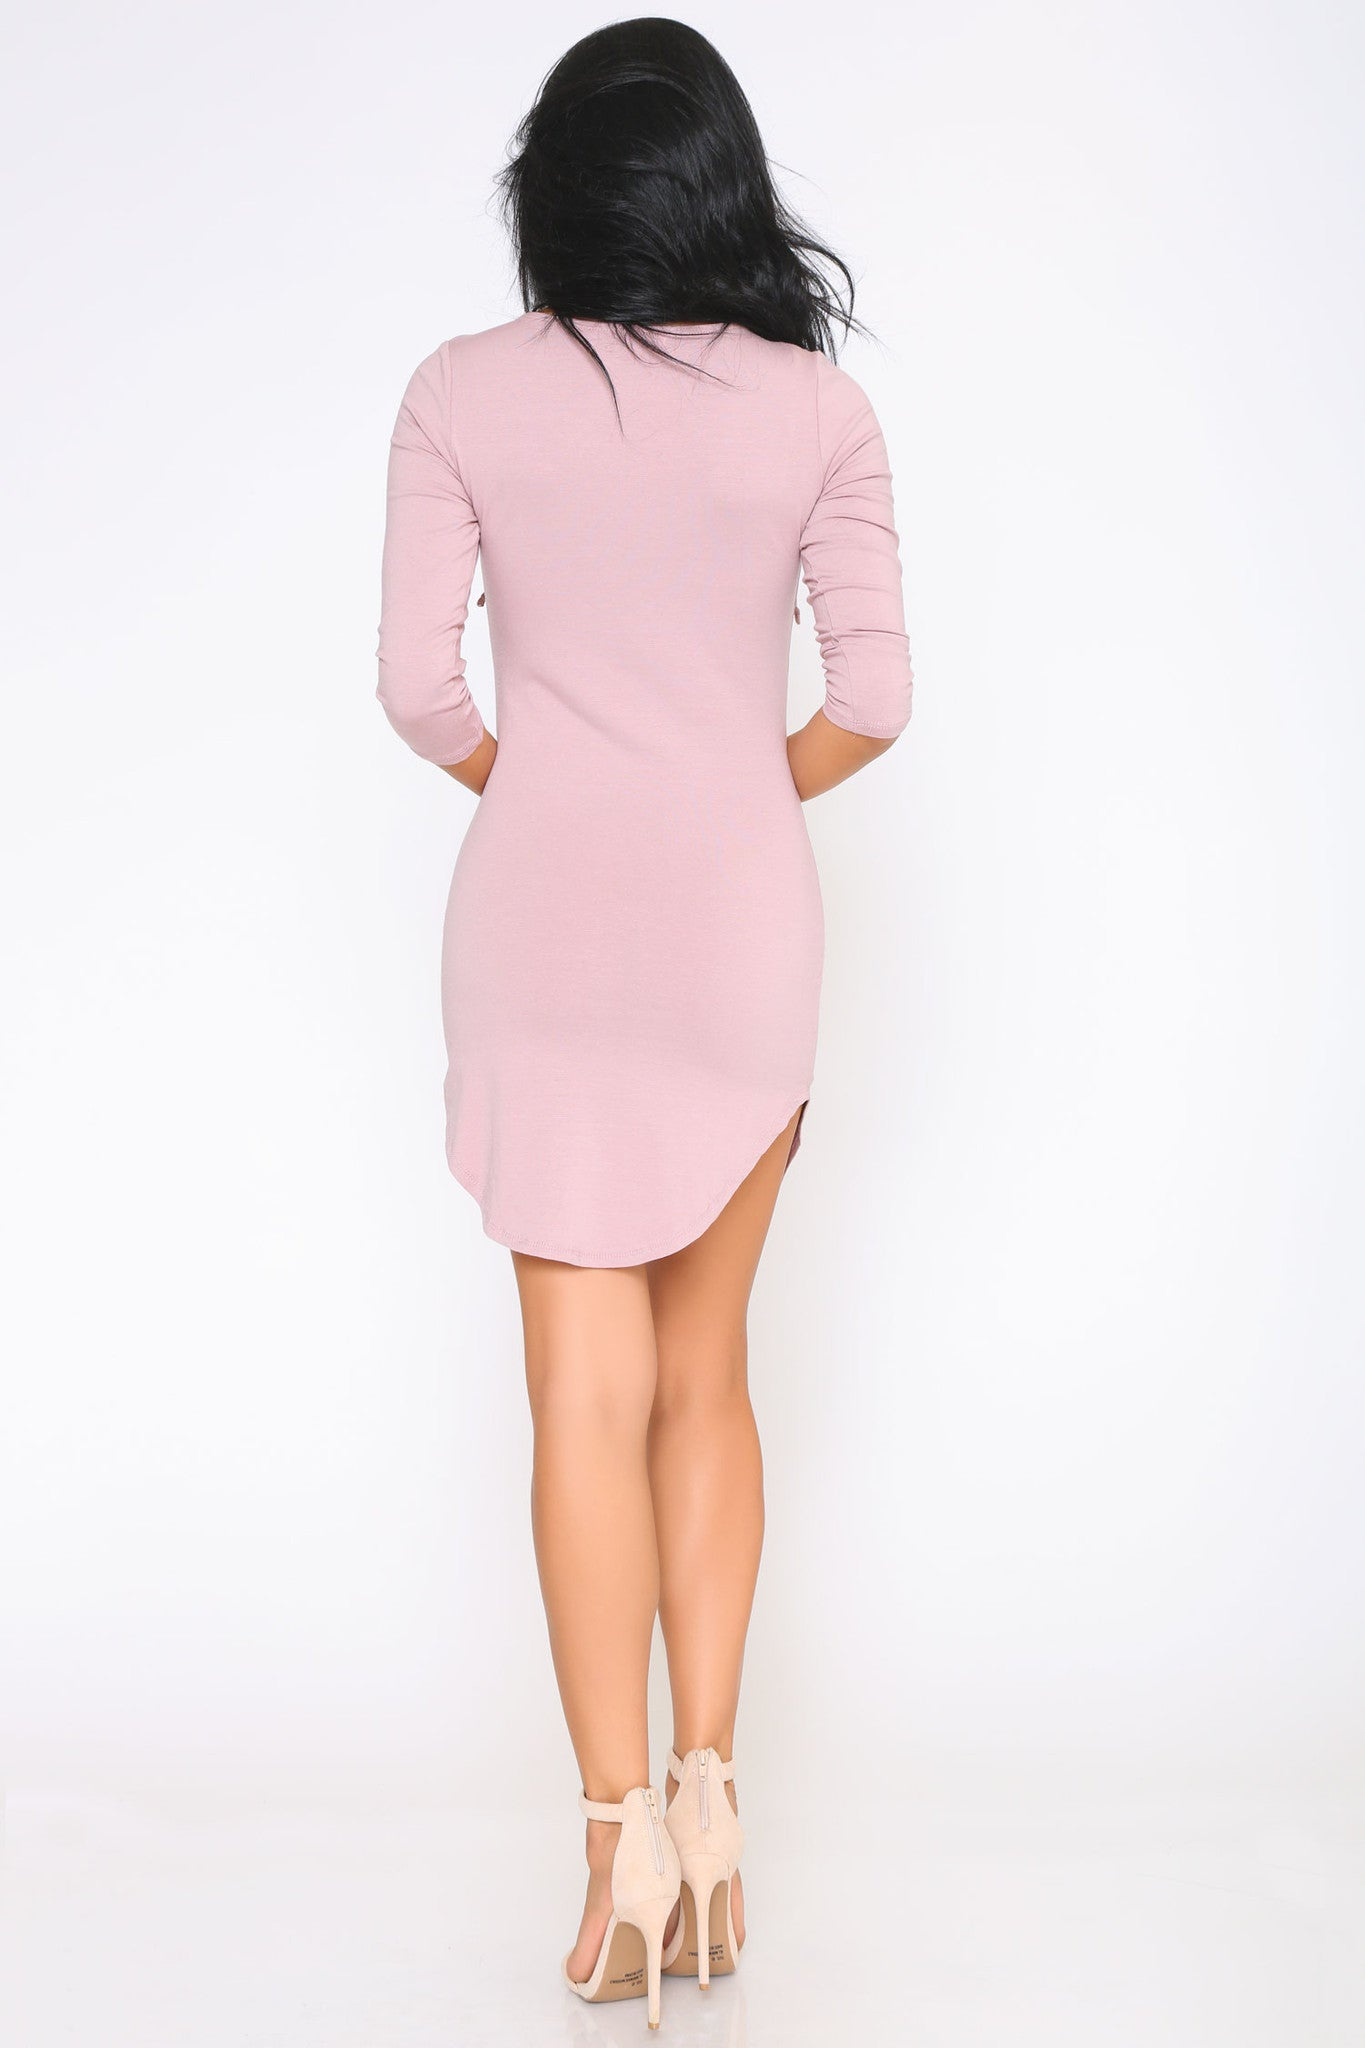 GREER DRESS - Glam Envy - 3